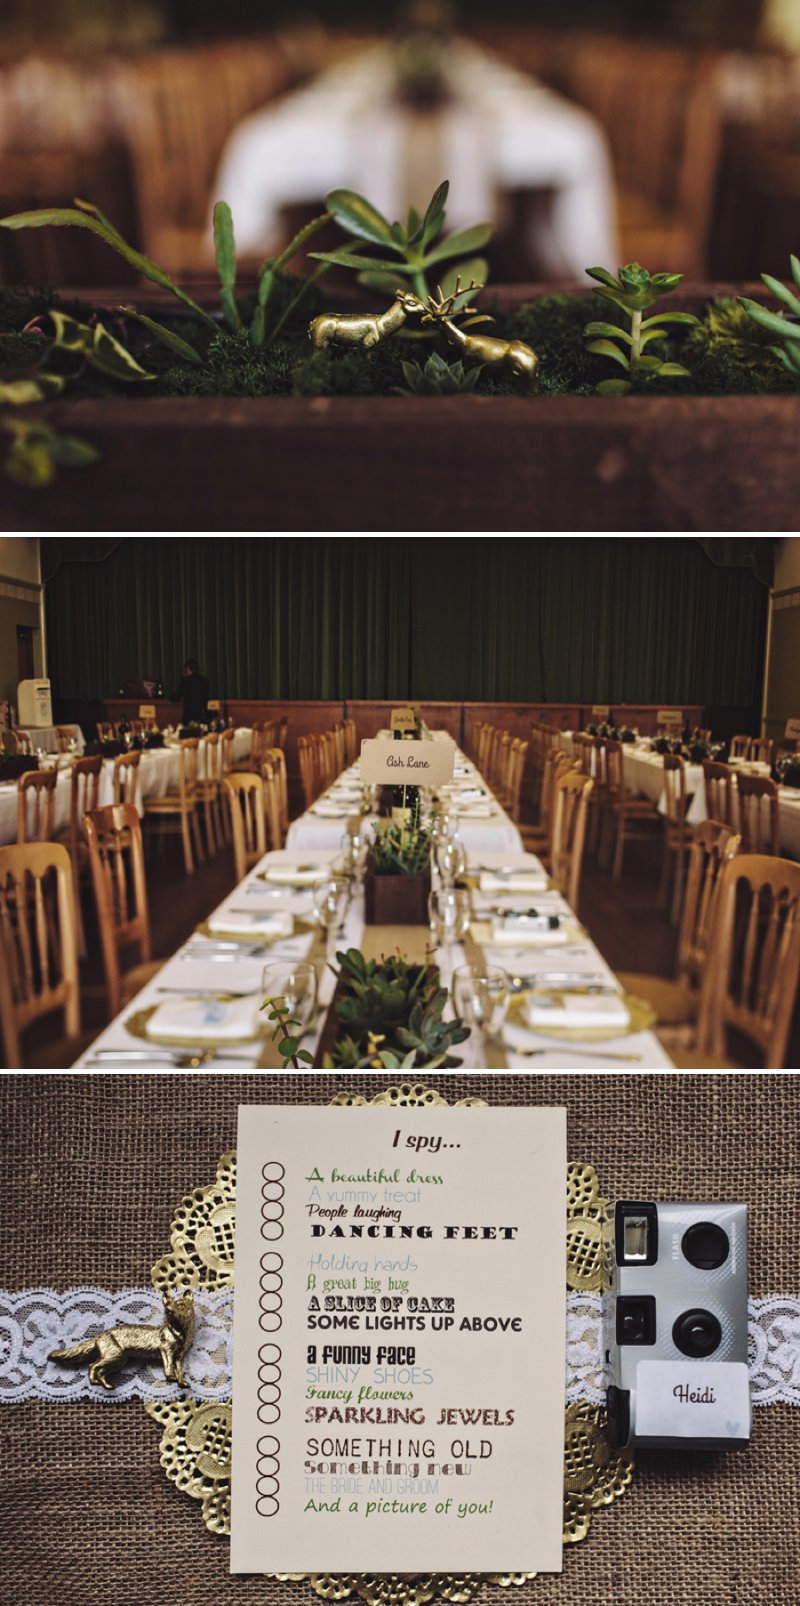 A Rustic Village Hall Wedding With A Blue And Gold Colour Scheme And Stag Graphic Across The Stationery With Bride In Bespoke Dress By Chic Dress And Groom In Brown Suit With Bridesmaids In Baby Blue Dresses With Broderie Anglaise Detail 8